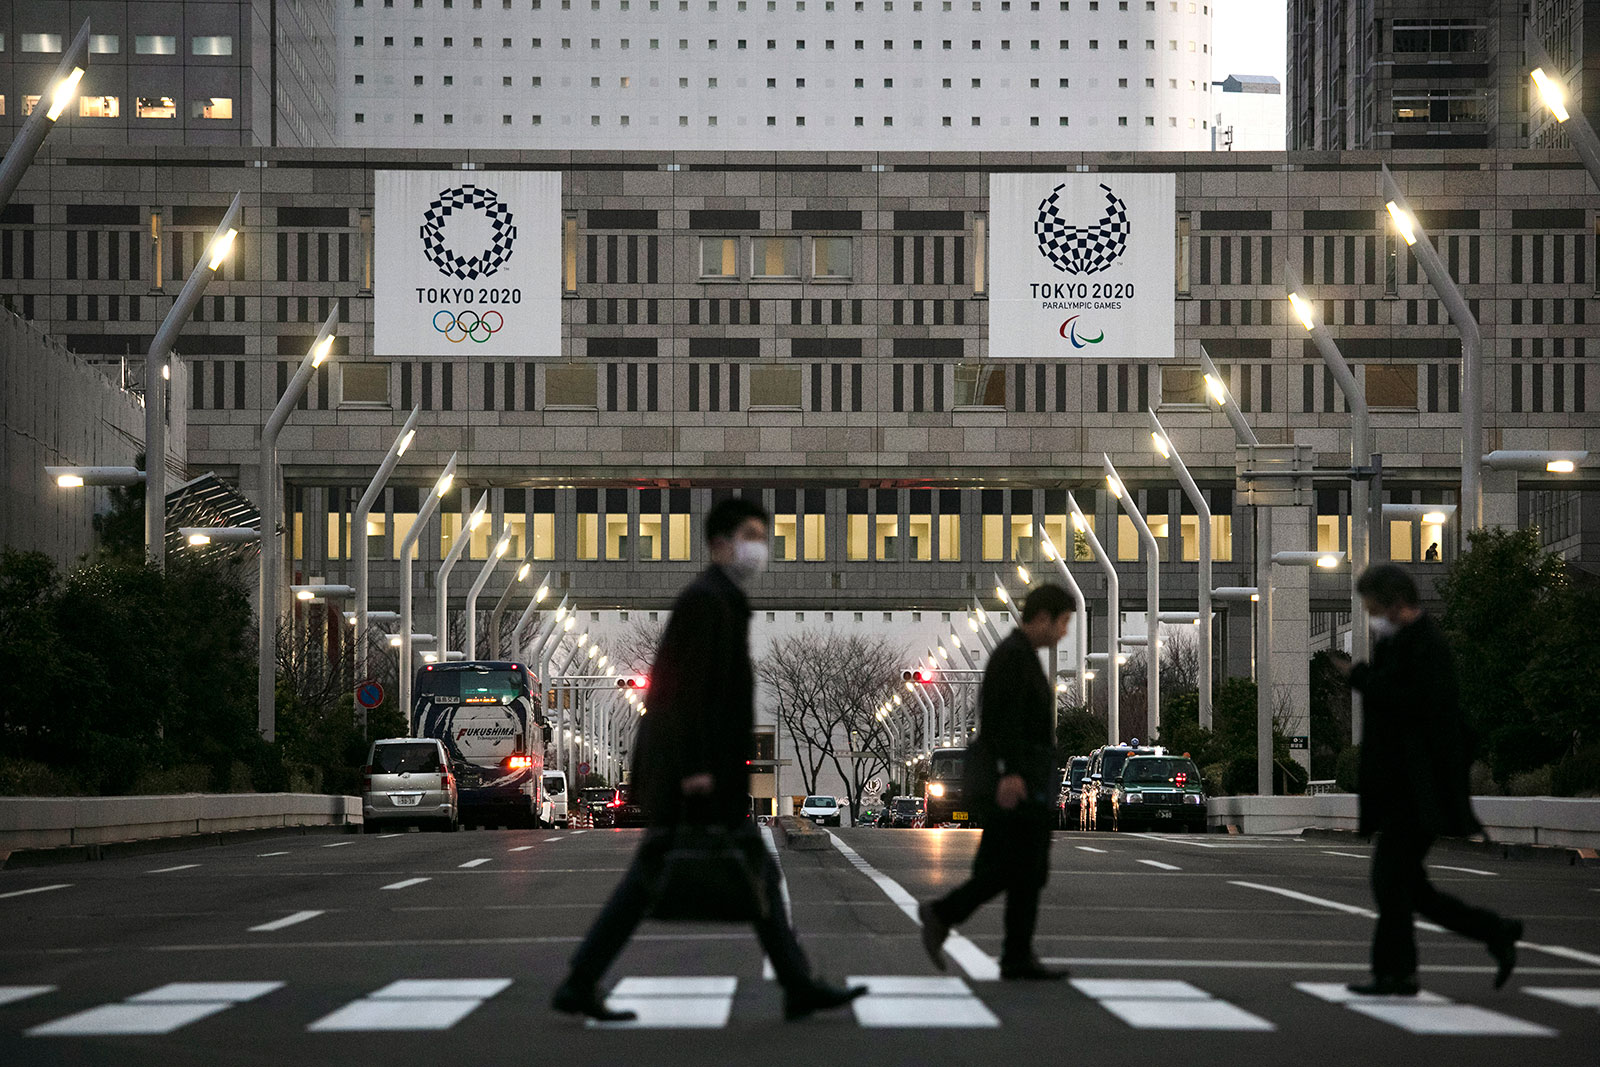 People walk across a pedestrian crossing near the Tokyo Metropolitan Government building in Tokyo on March 3.